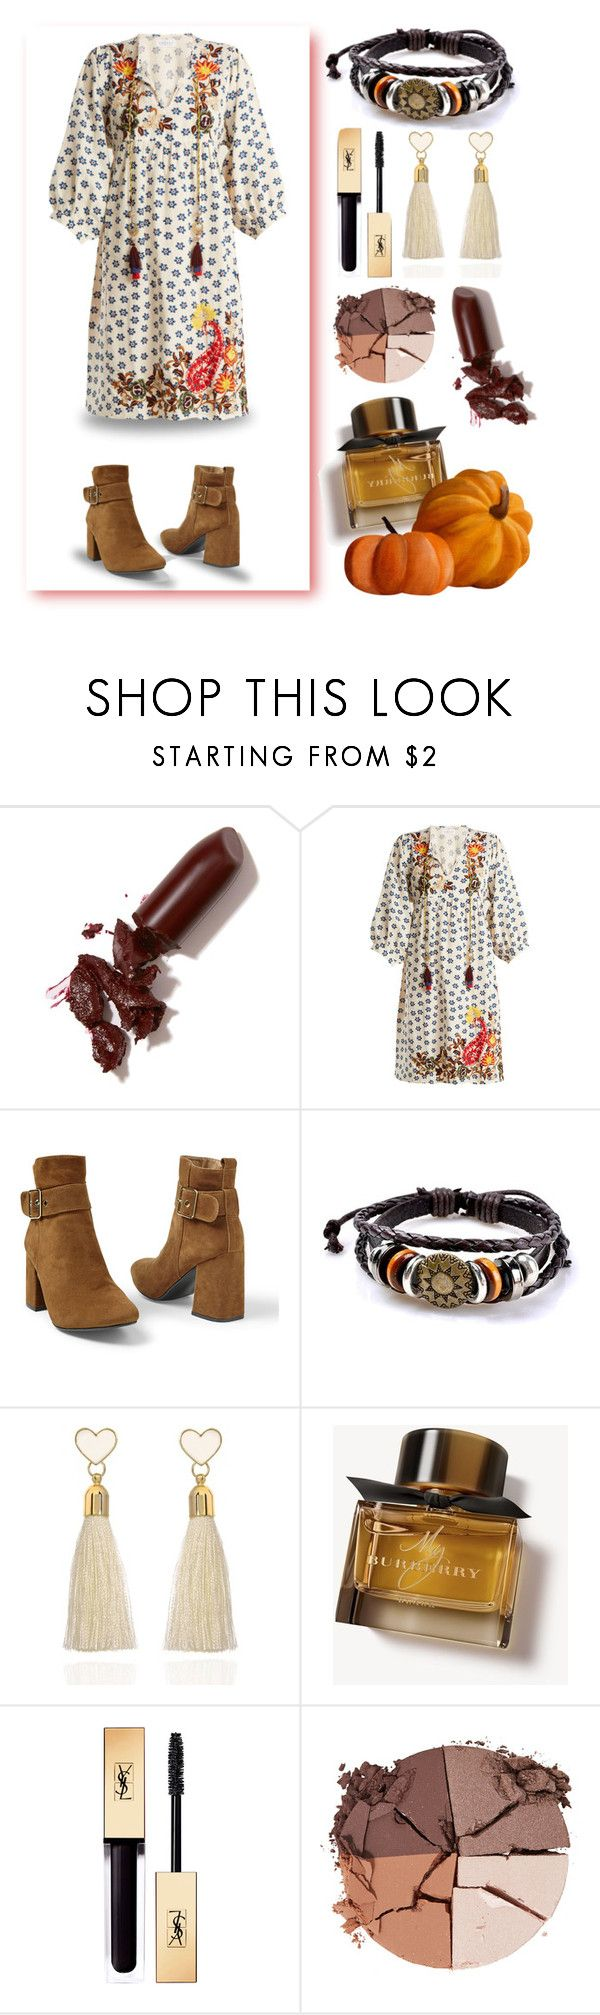 """""""OUTFIT"""" by golden-bird-love ❤ liked on Polyvore featuring LAQA & Co., Velvet by Graham & Spencer, Venus, C.J.M, Burberry and lilah b."""